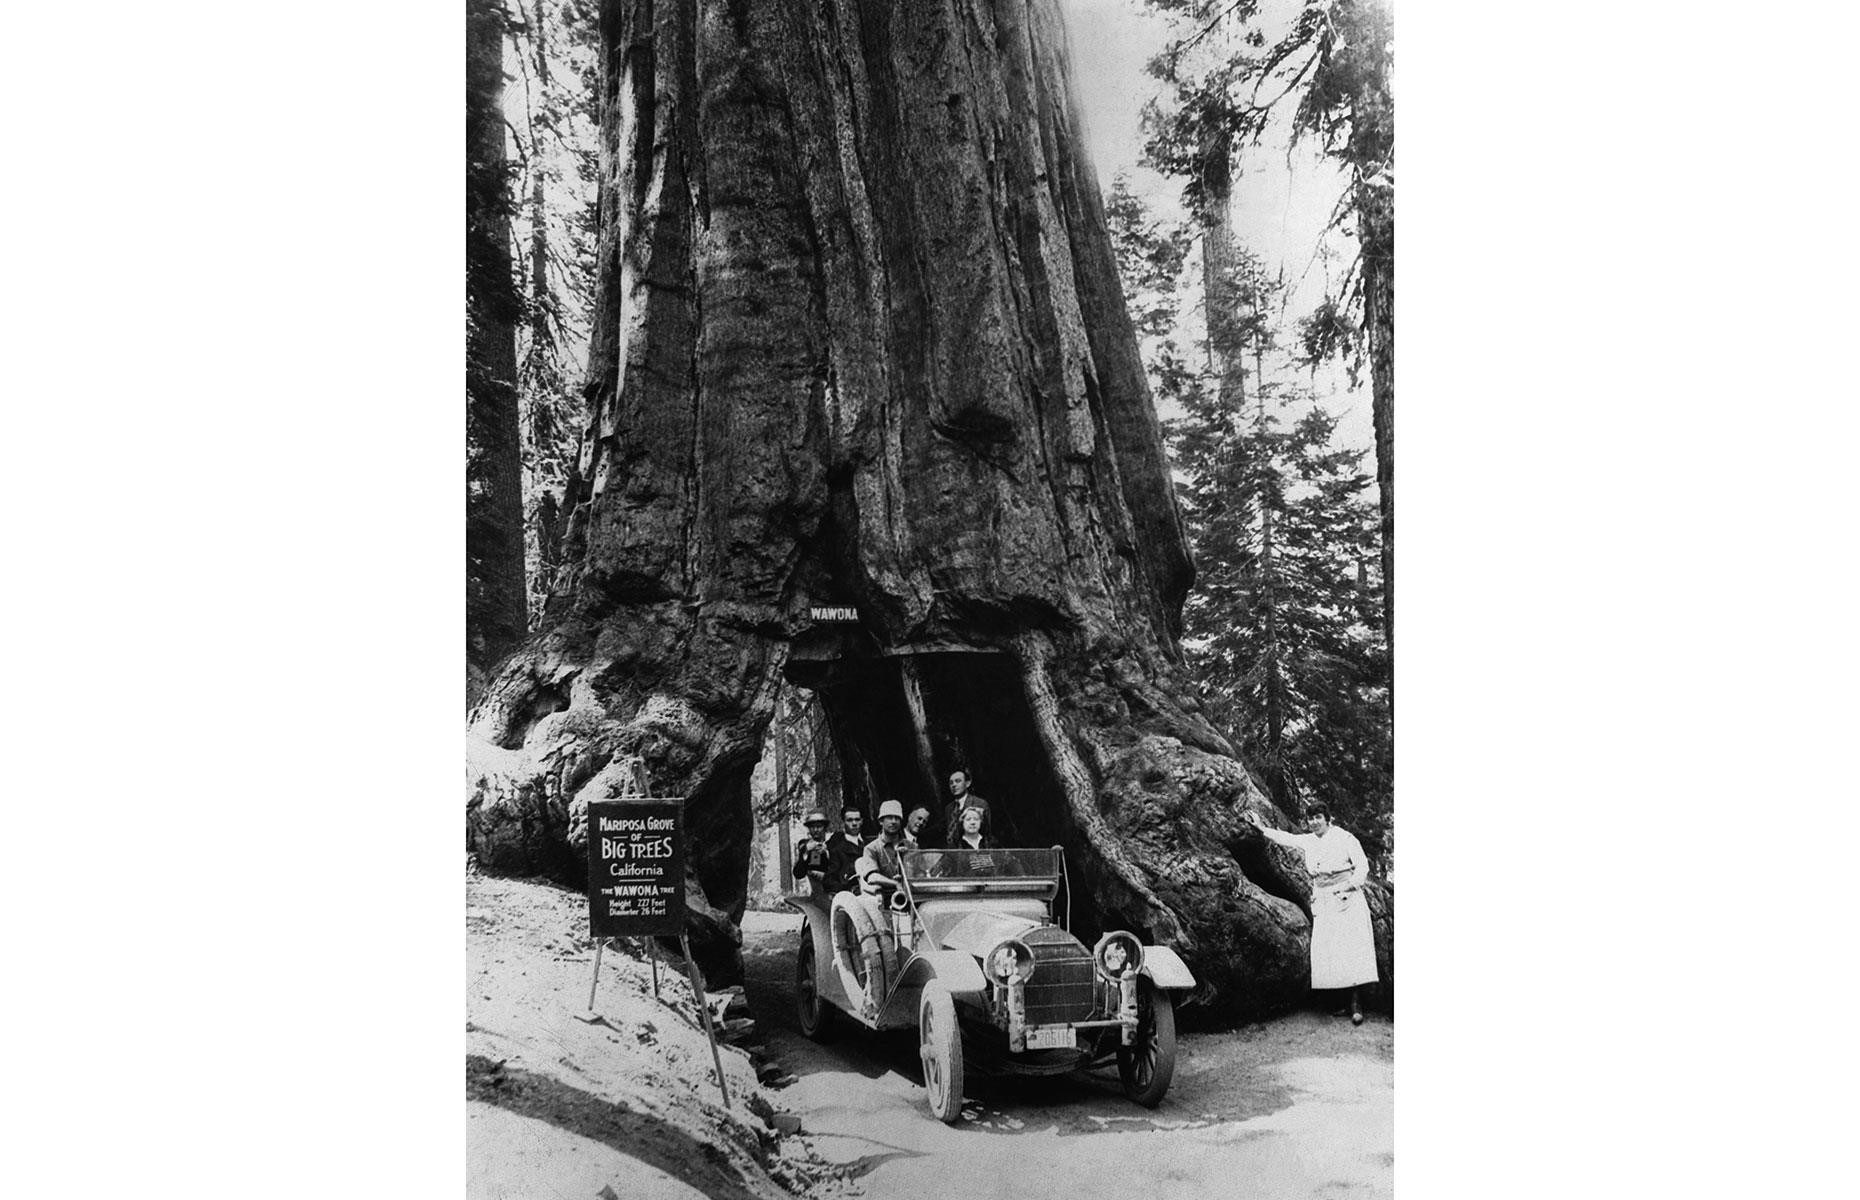 Slide 2 of 39: Back in 1881 a tunnel was carved through this 2,100-year old sequoia tree in Mariposa Grove, Yosemite National Park. By the late 1910s (when it's likely this photograph was taken) the tree was popular with tourists, keen to be pictured driving right through the 234-foot (71.3m) high natural wonder. Even President Theodore Roosevelt visited in 1903.